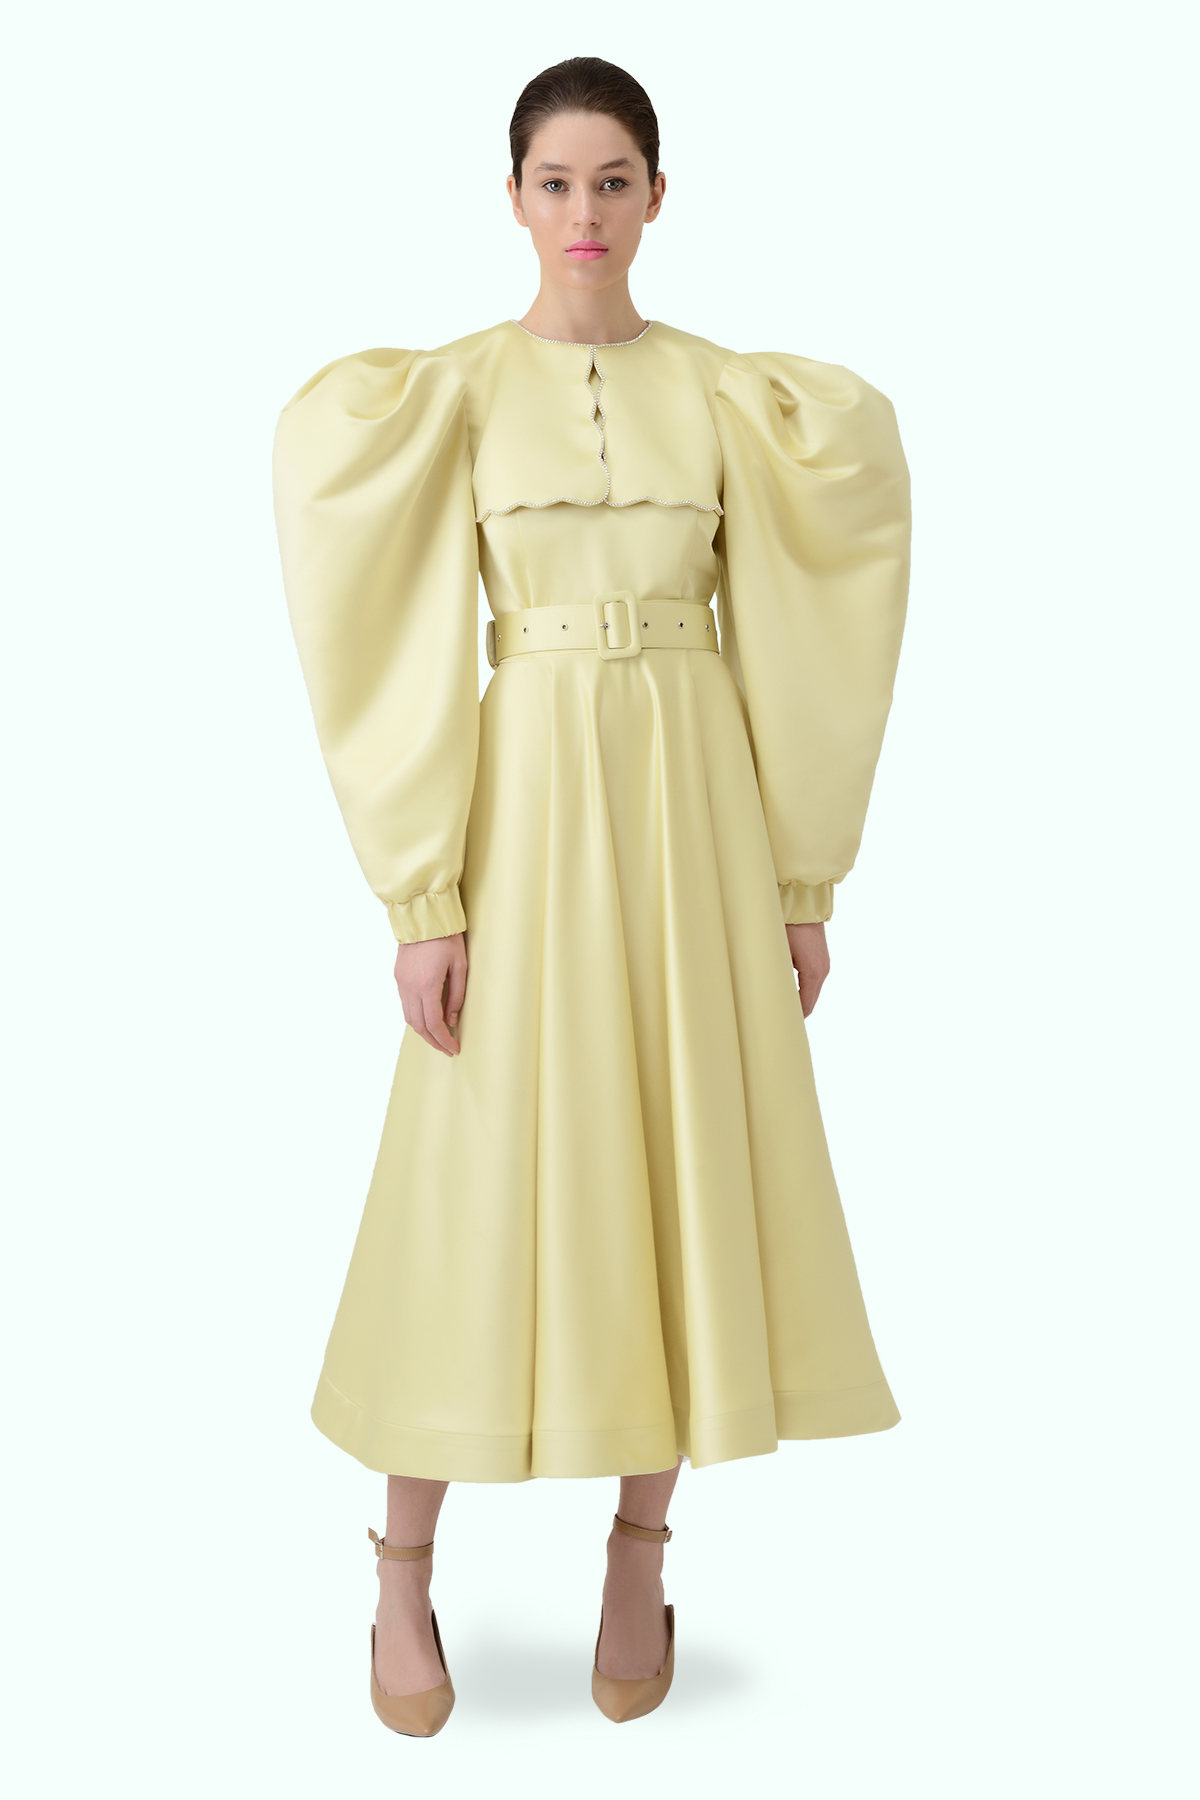 Puff sleeve yellow dress with puritan collar and embroidered crystals